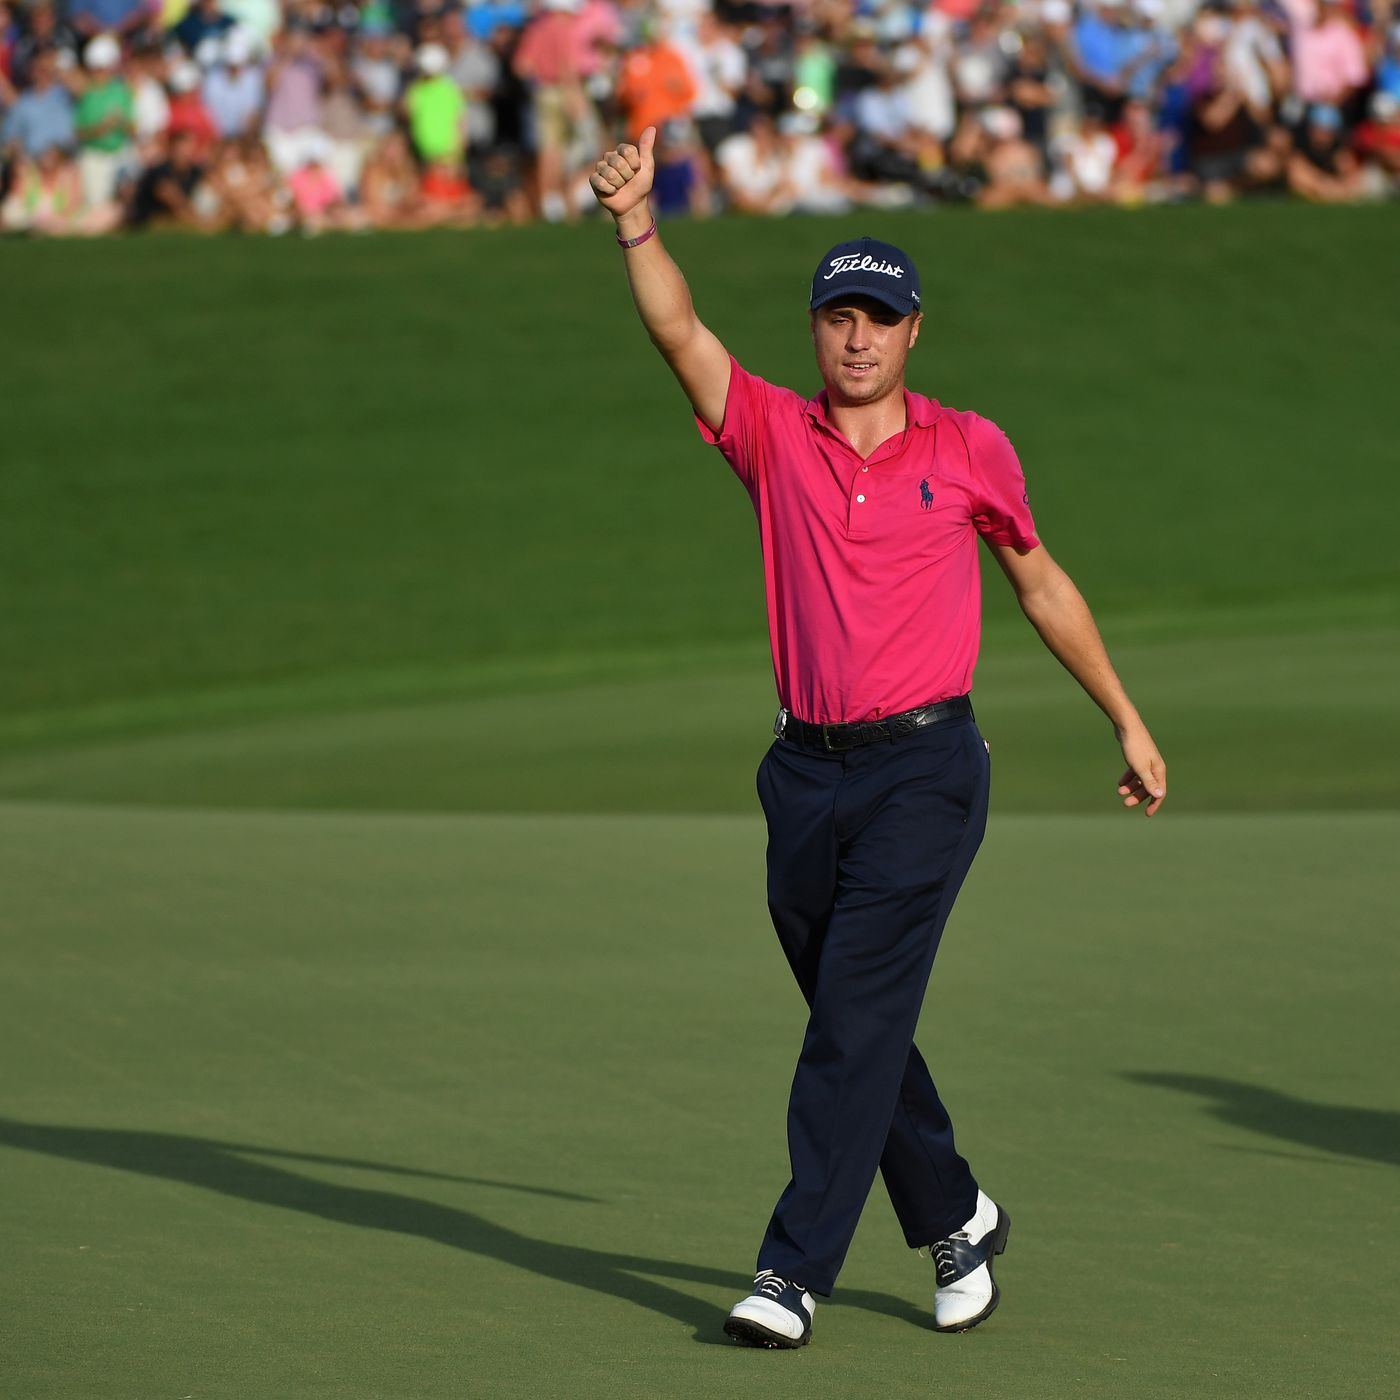 Pga Championship 2017 Justin Thomas Is Newest First Time Major Victor With Come From Behind Win At Quail Hollow Sbnation Com